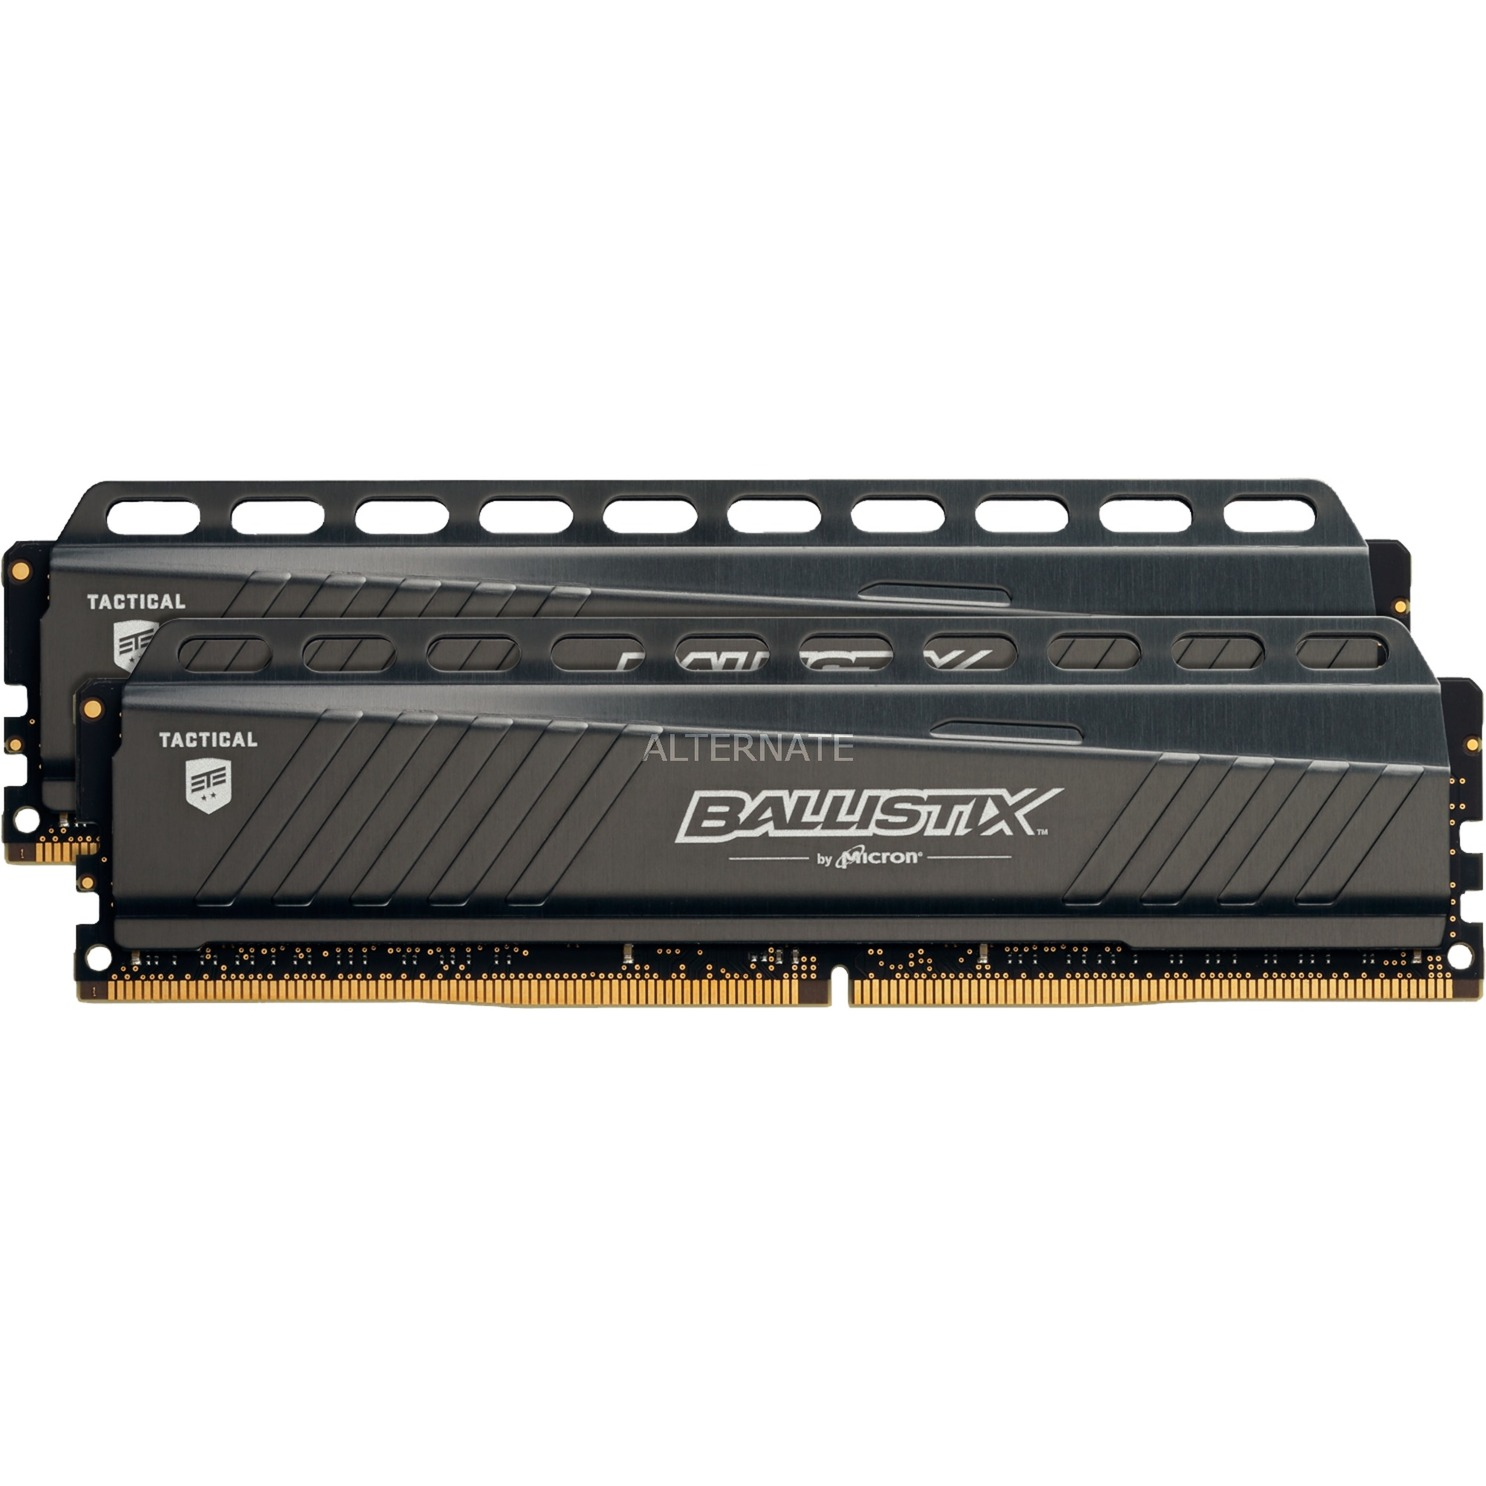 Ballistix Tactical 8 Go (2 x 4 Go) DDR4 3000 MHz CL16, Mémoire